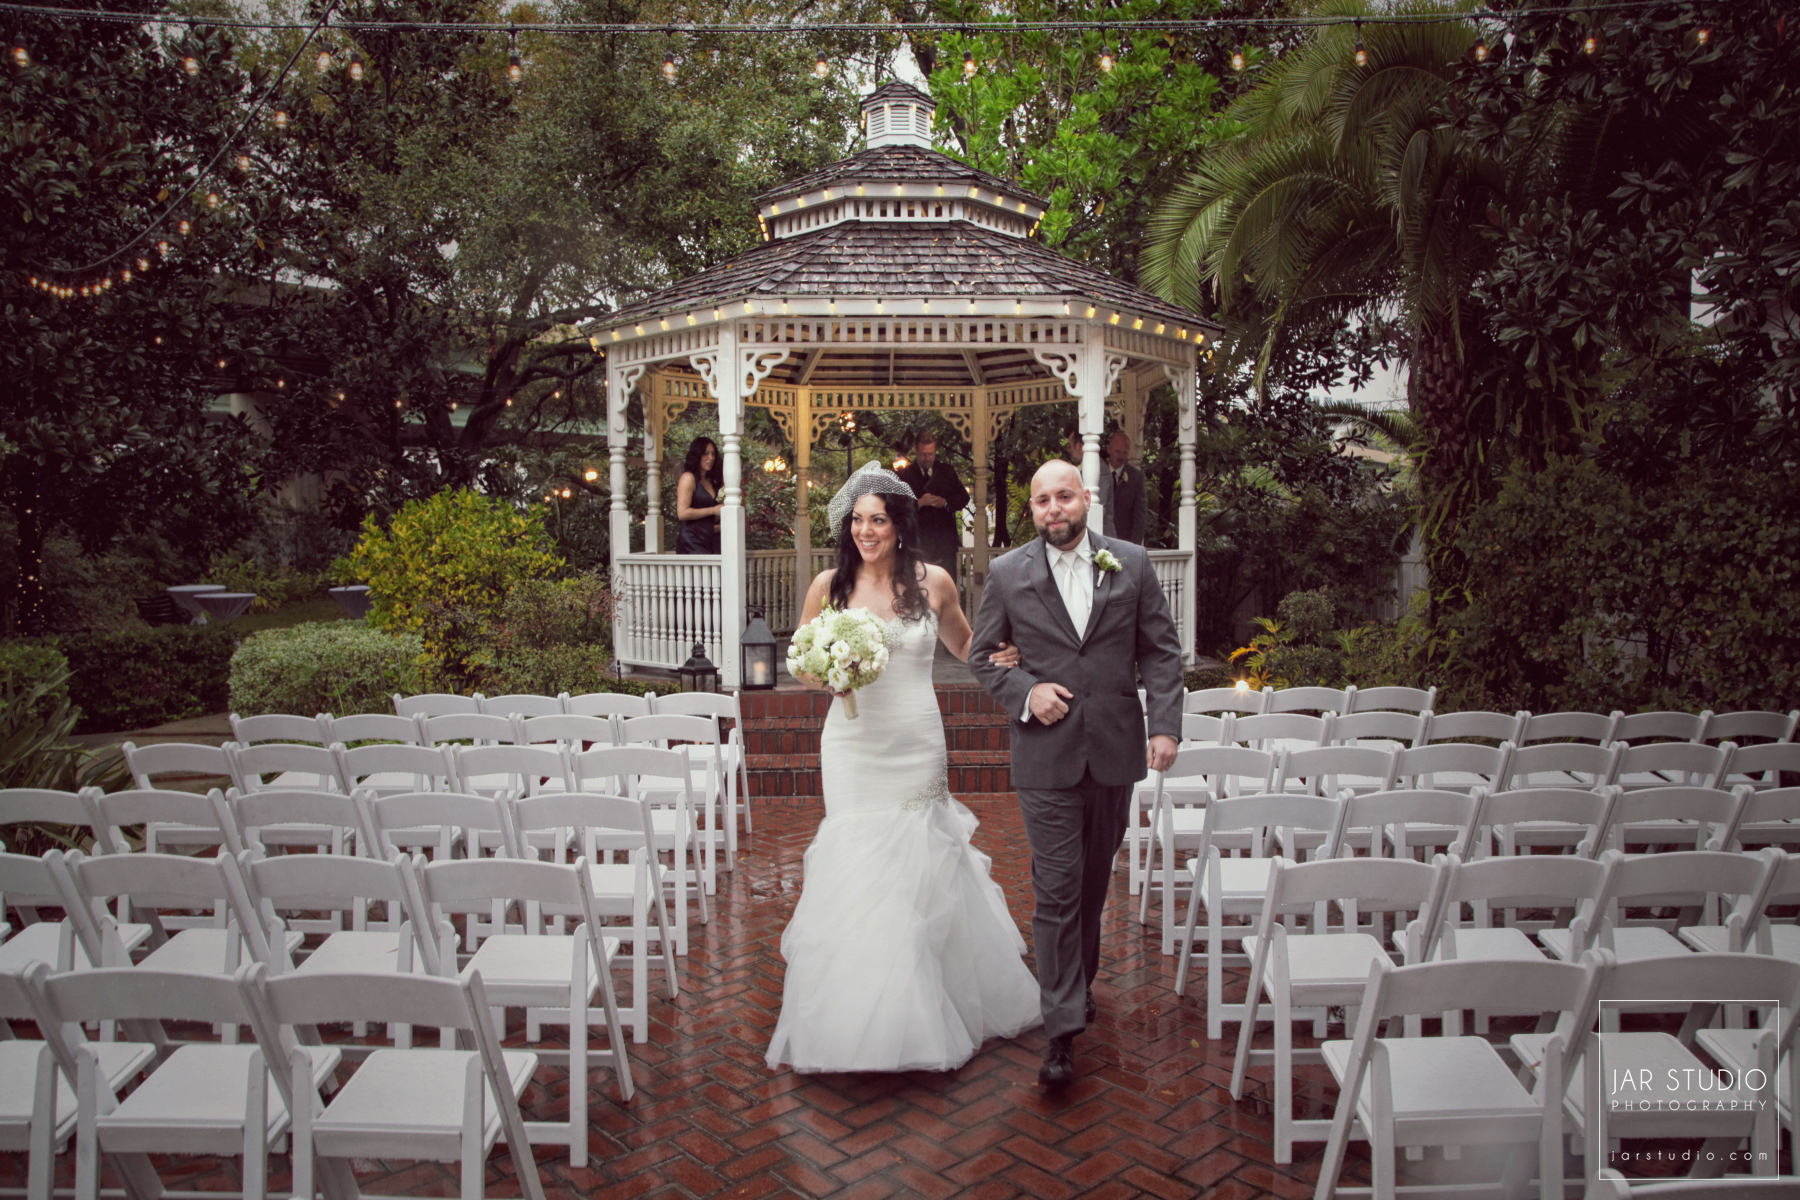 20-orlando-wedding-photographer-jarstudio.JPG